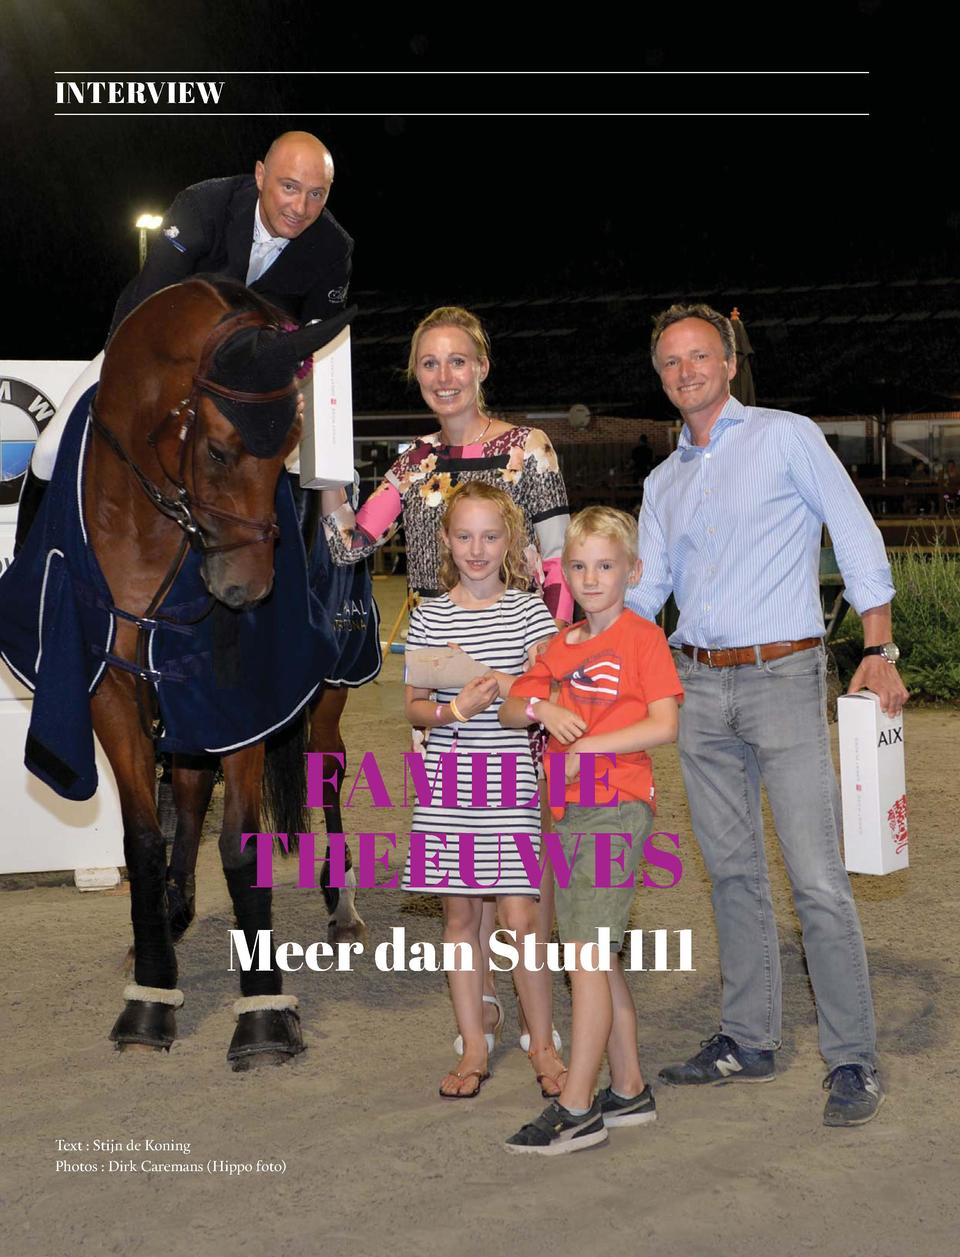 28  INTERVIEW  FAMILIE THEEUWES Meer dan Stud 111  Text   Stijn de Koning Photos   Dirk Caremans  Hippo foto